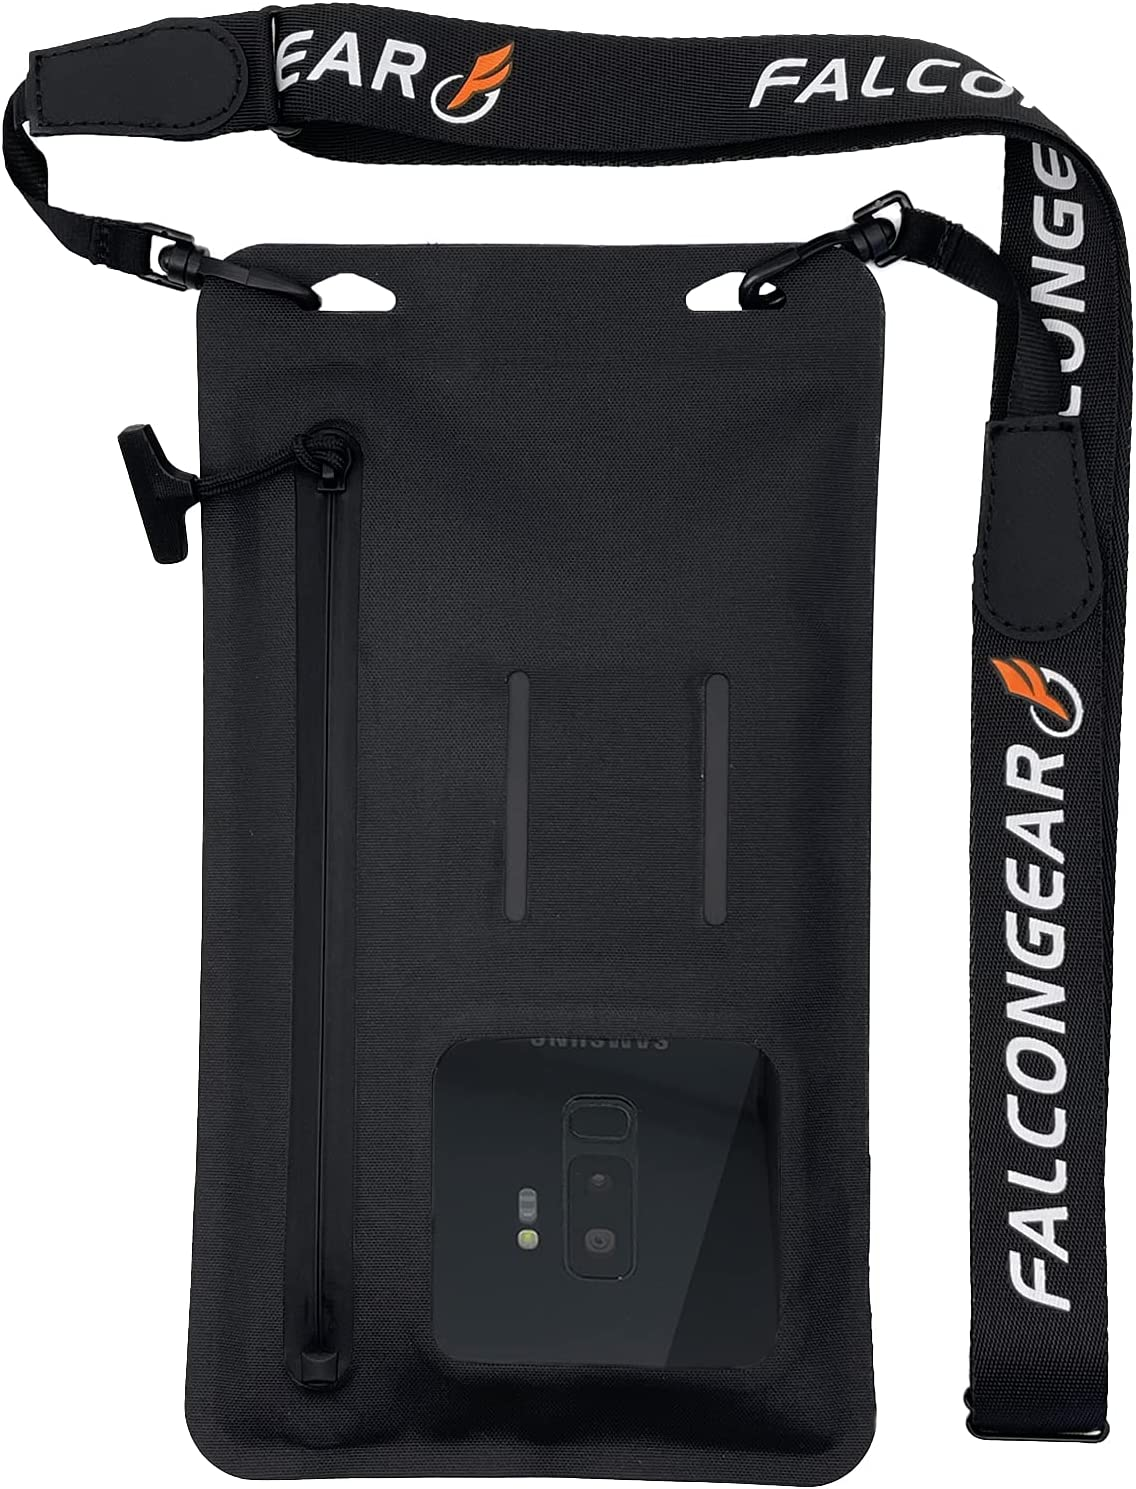 """FalconGear Floating Waterproof Phone Pouch Universal Waterproof Phone Case with Zipper & Adjustable Lanyard Cellphone Dry Bag for iPhone 12/11 Pro Max XR Galaxy S21/20 Ultra & Up to 7.5"""" (Black)"""